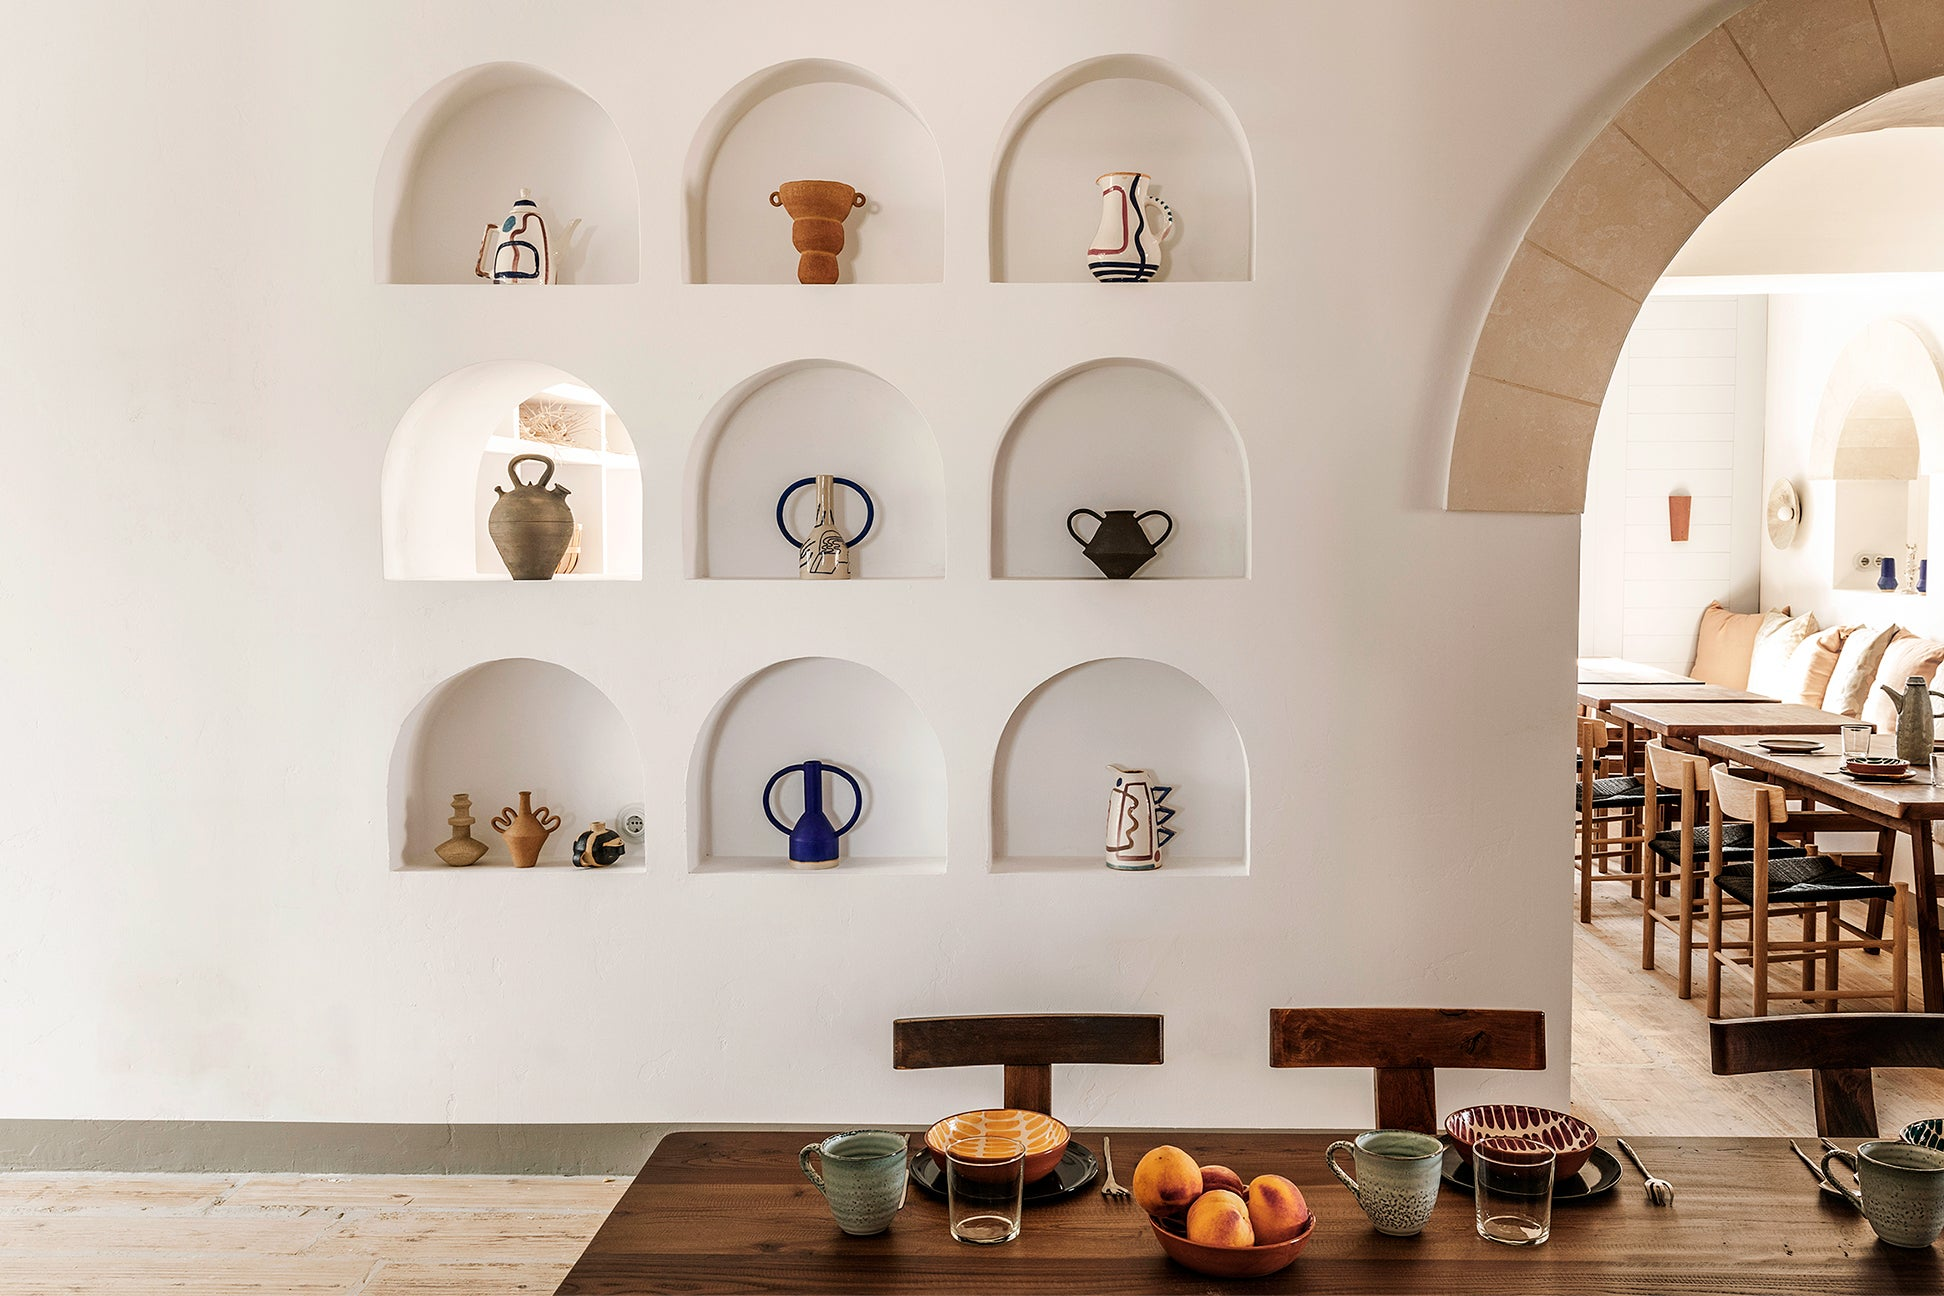 wall niches filled with vases